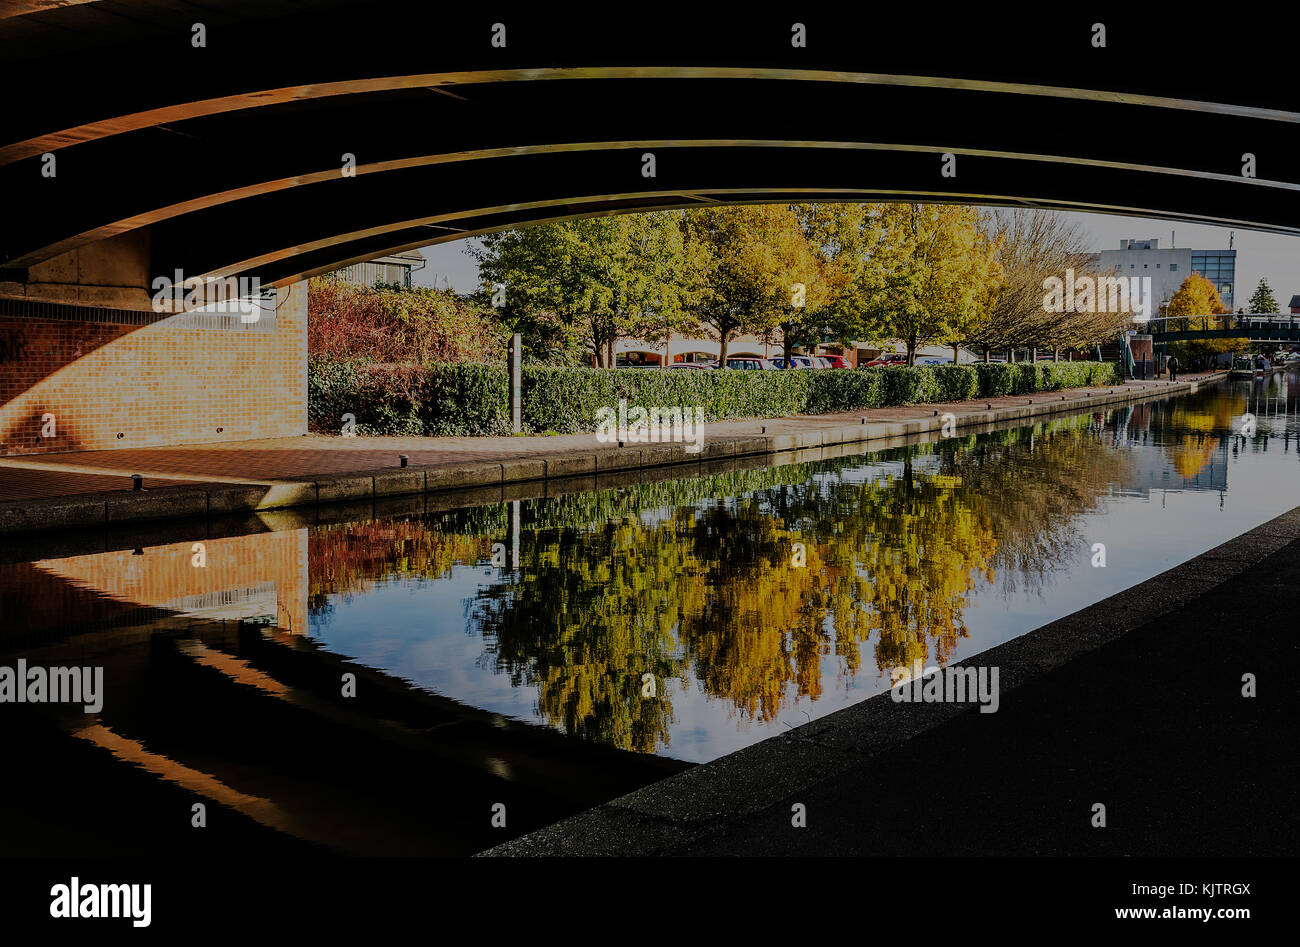 Tom Rolt Canal Bridge, Banbury, Oxfordshire - Stock Image